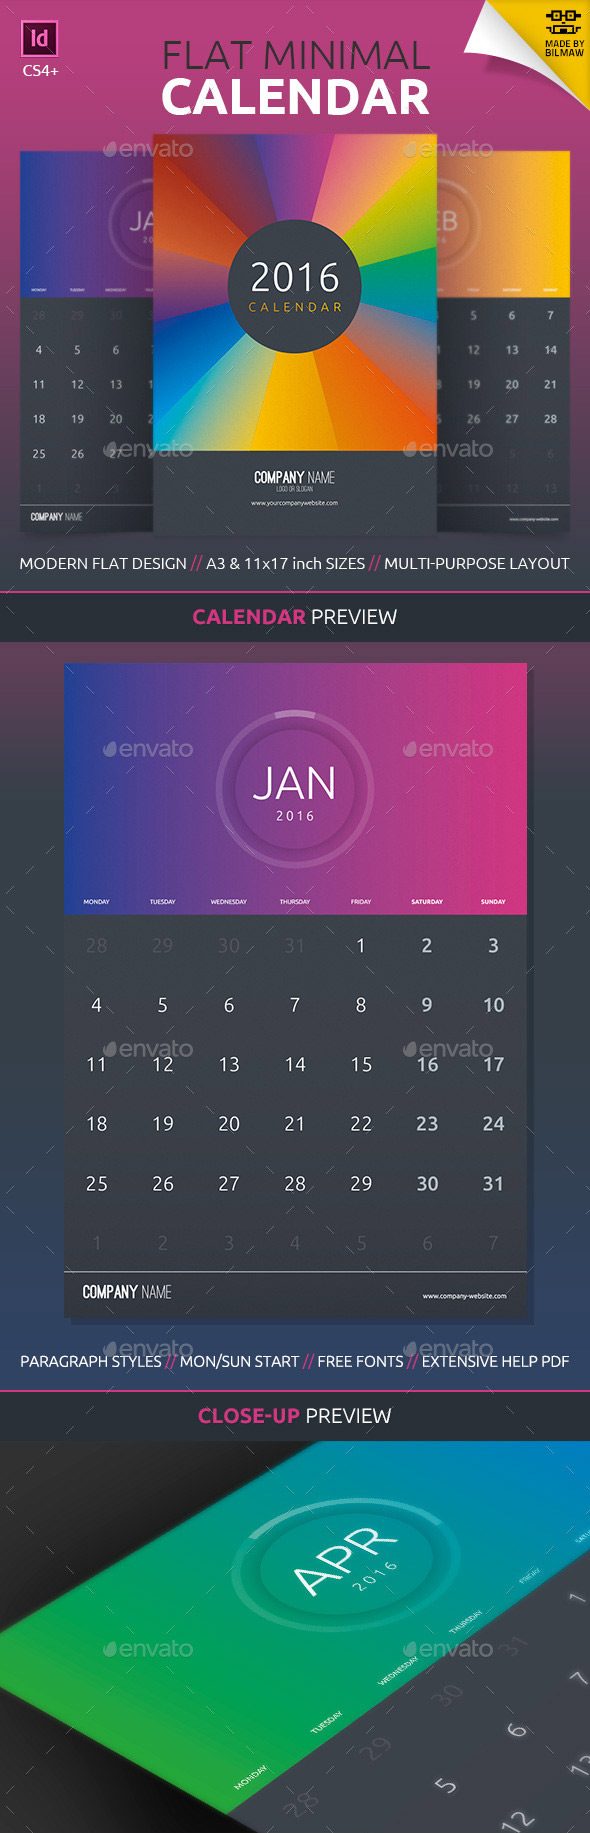 Monthly Calendar Design Creative : Kickstart with a creative monthly calendar template